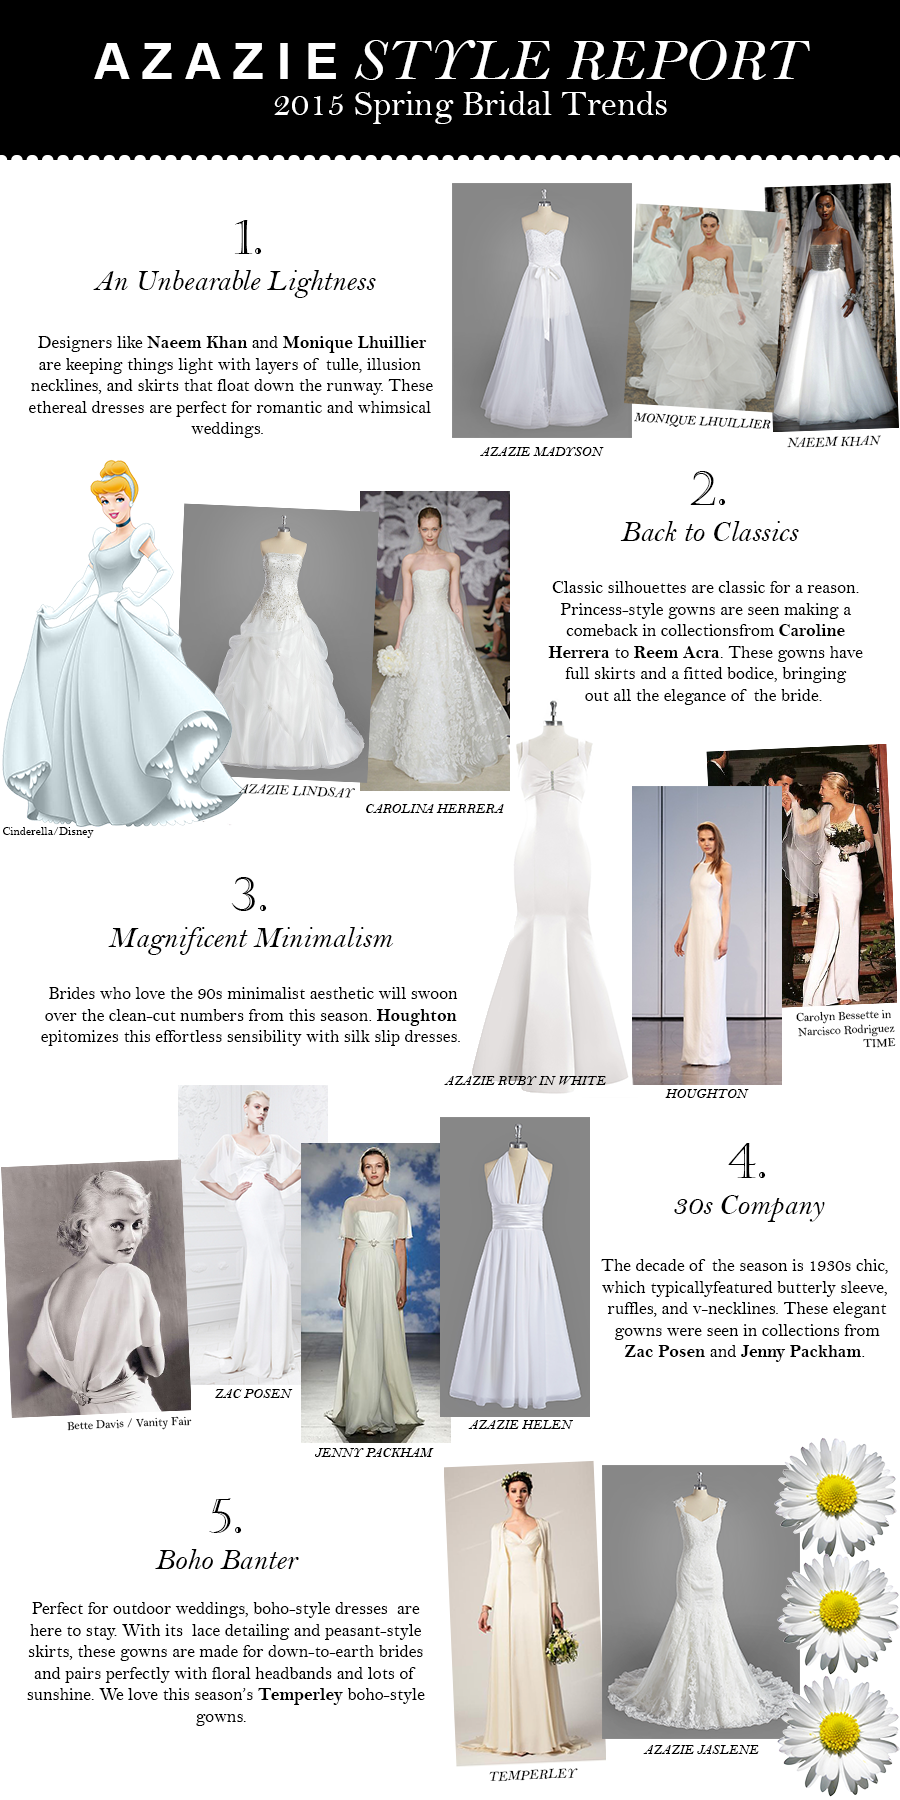 AZAZIE Style Report – 2015 Bridal Collection Trends